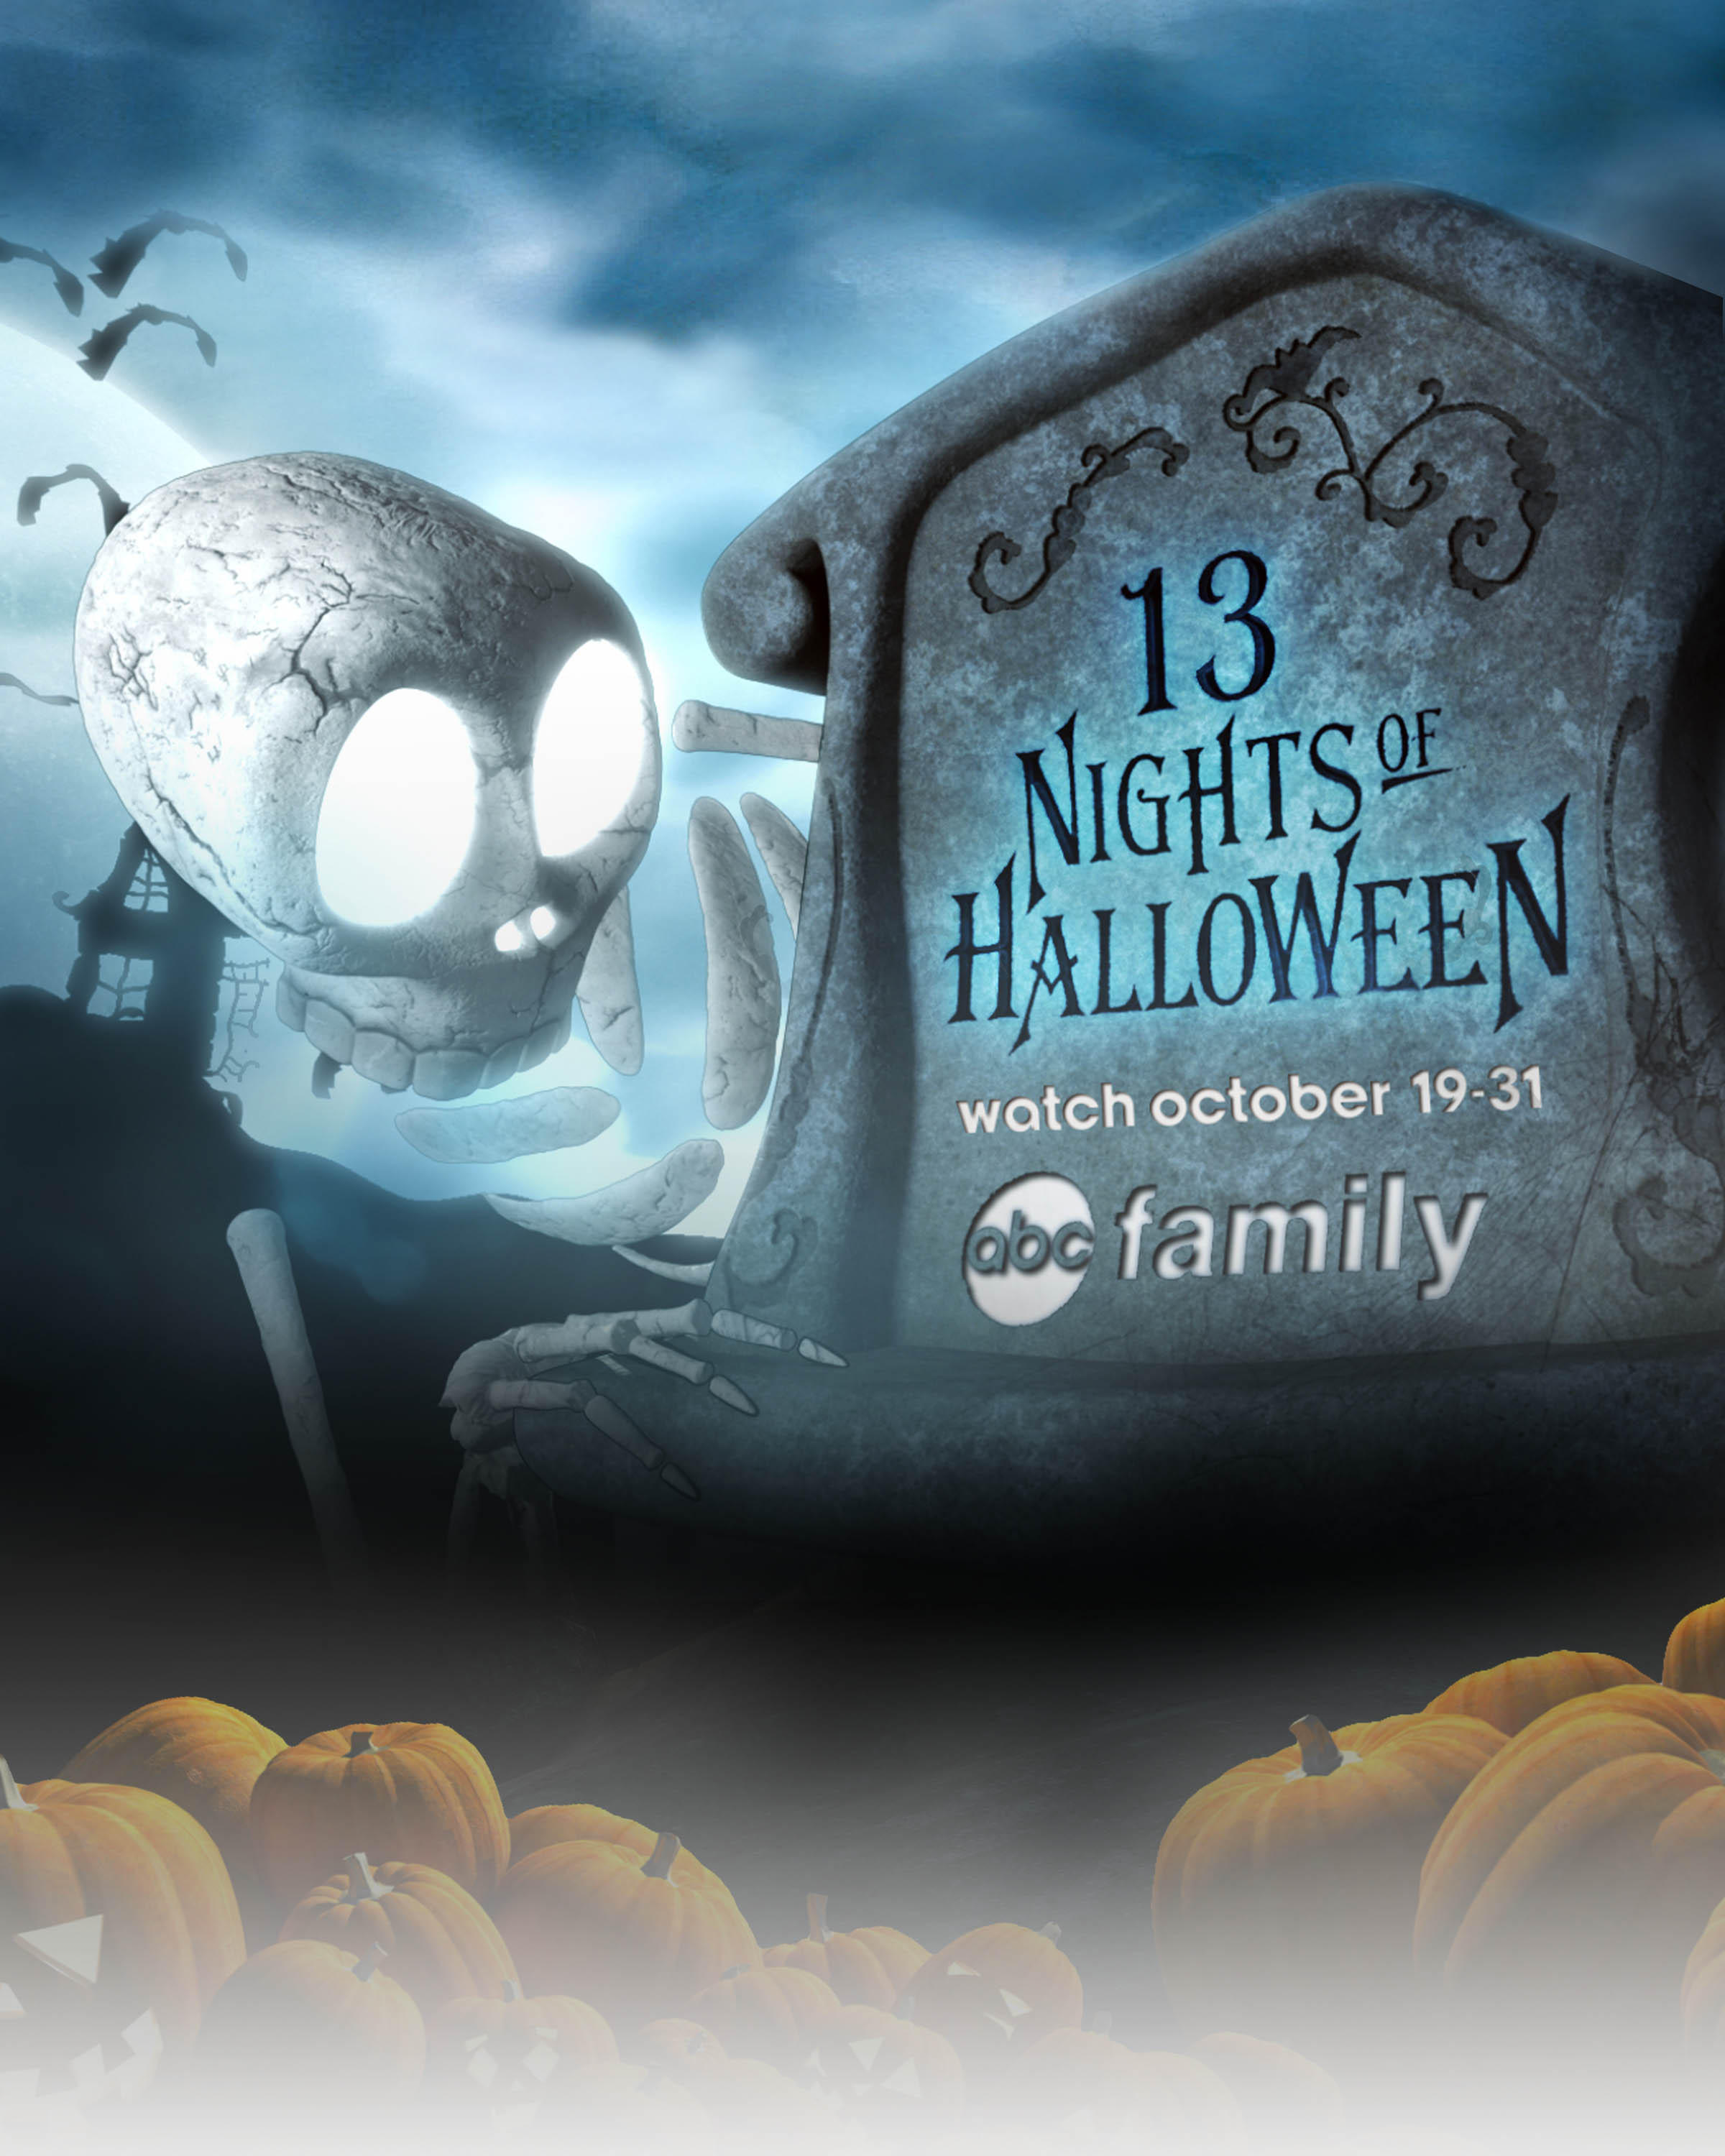 ABC FAMILY'S 13 NIGHTS OF HALLOWEEN - Series & TV